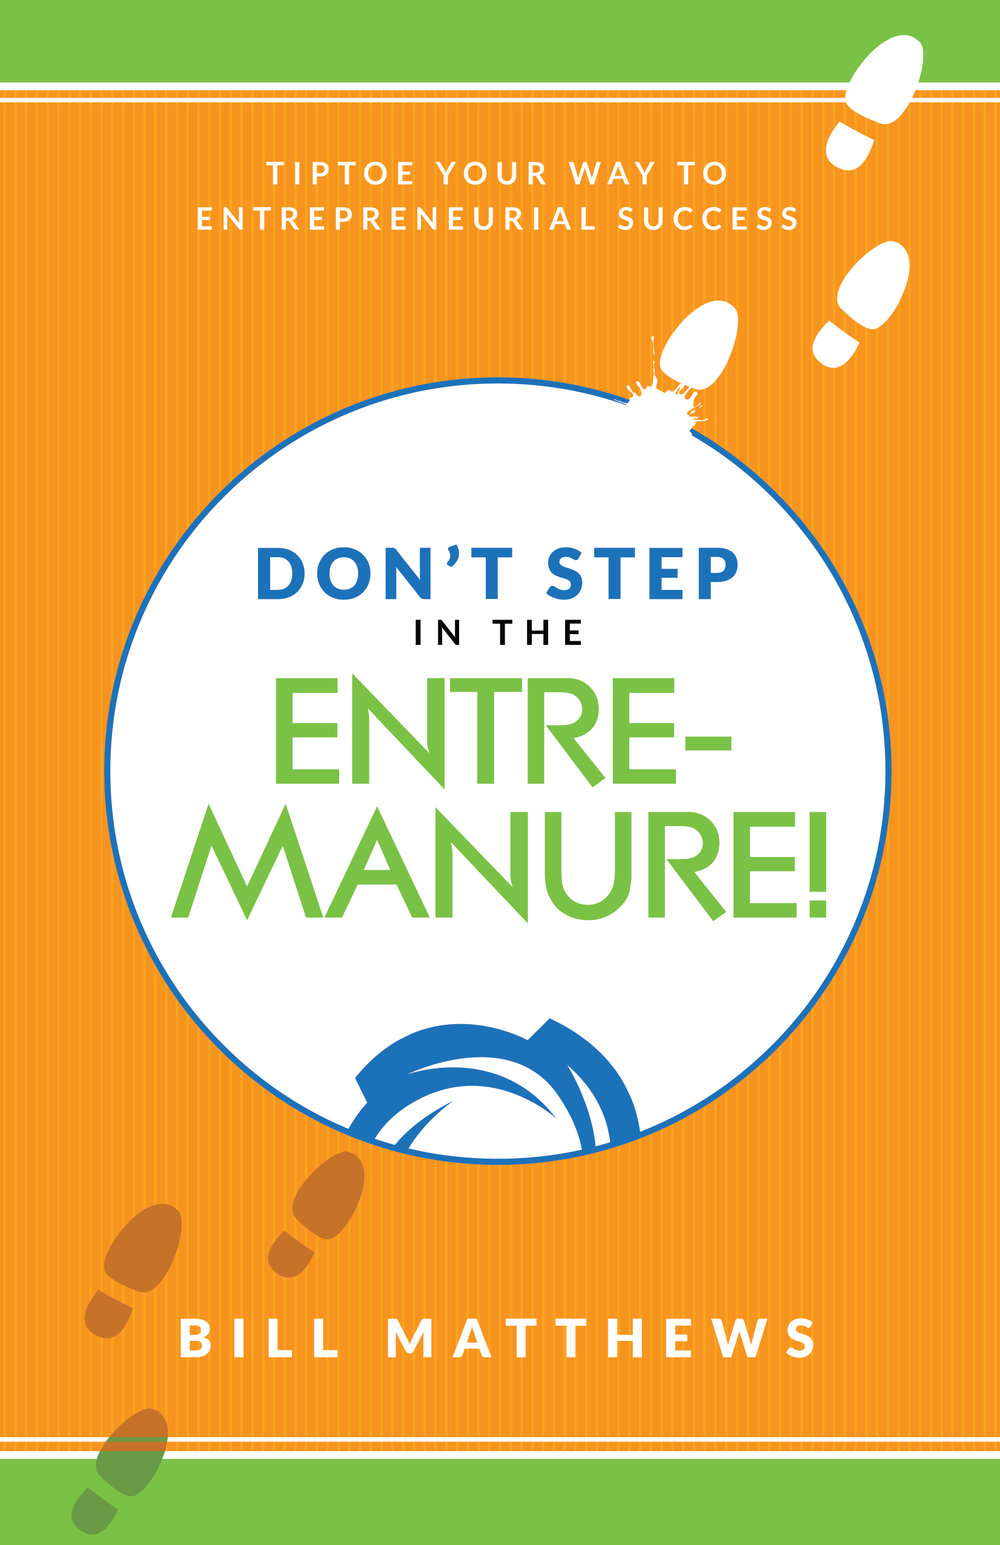 Don't Step in the Entre-Manure - Bill Matthews